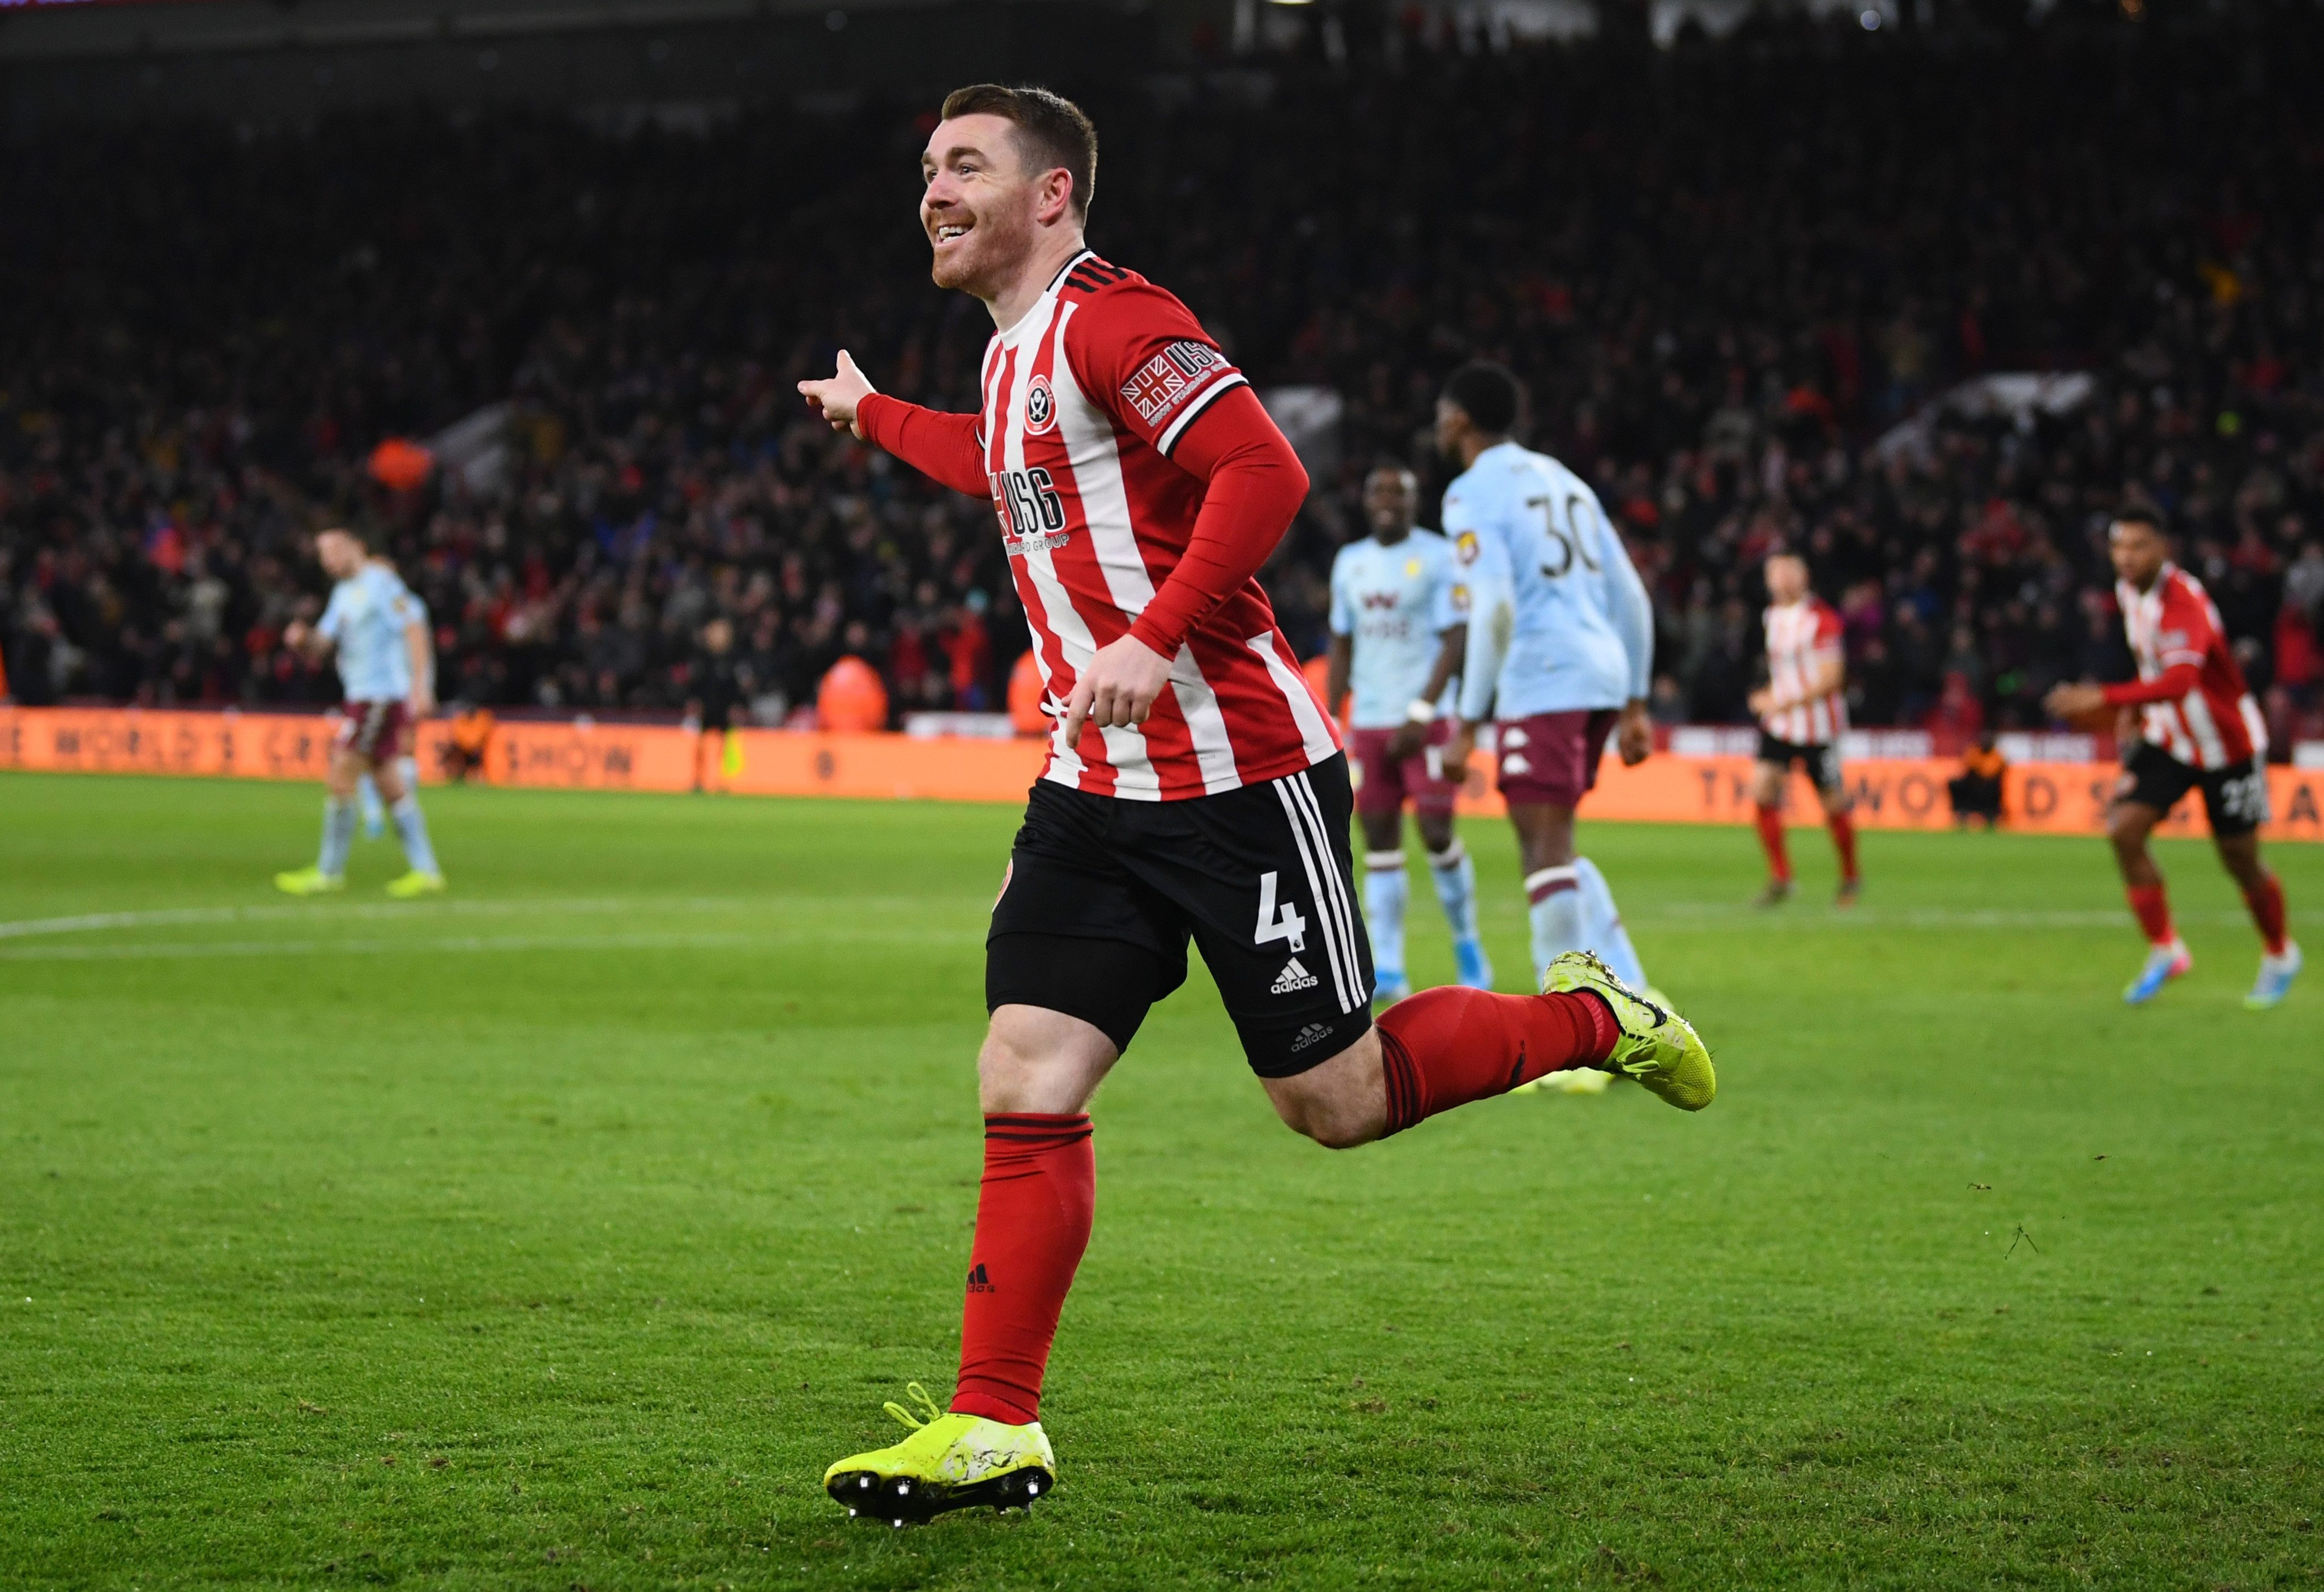 John Fleck fired Sheffield United to glory against Burnley earlier this season